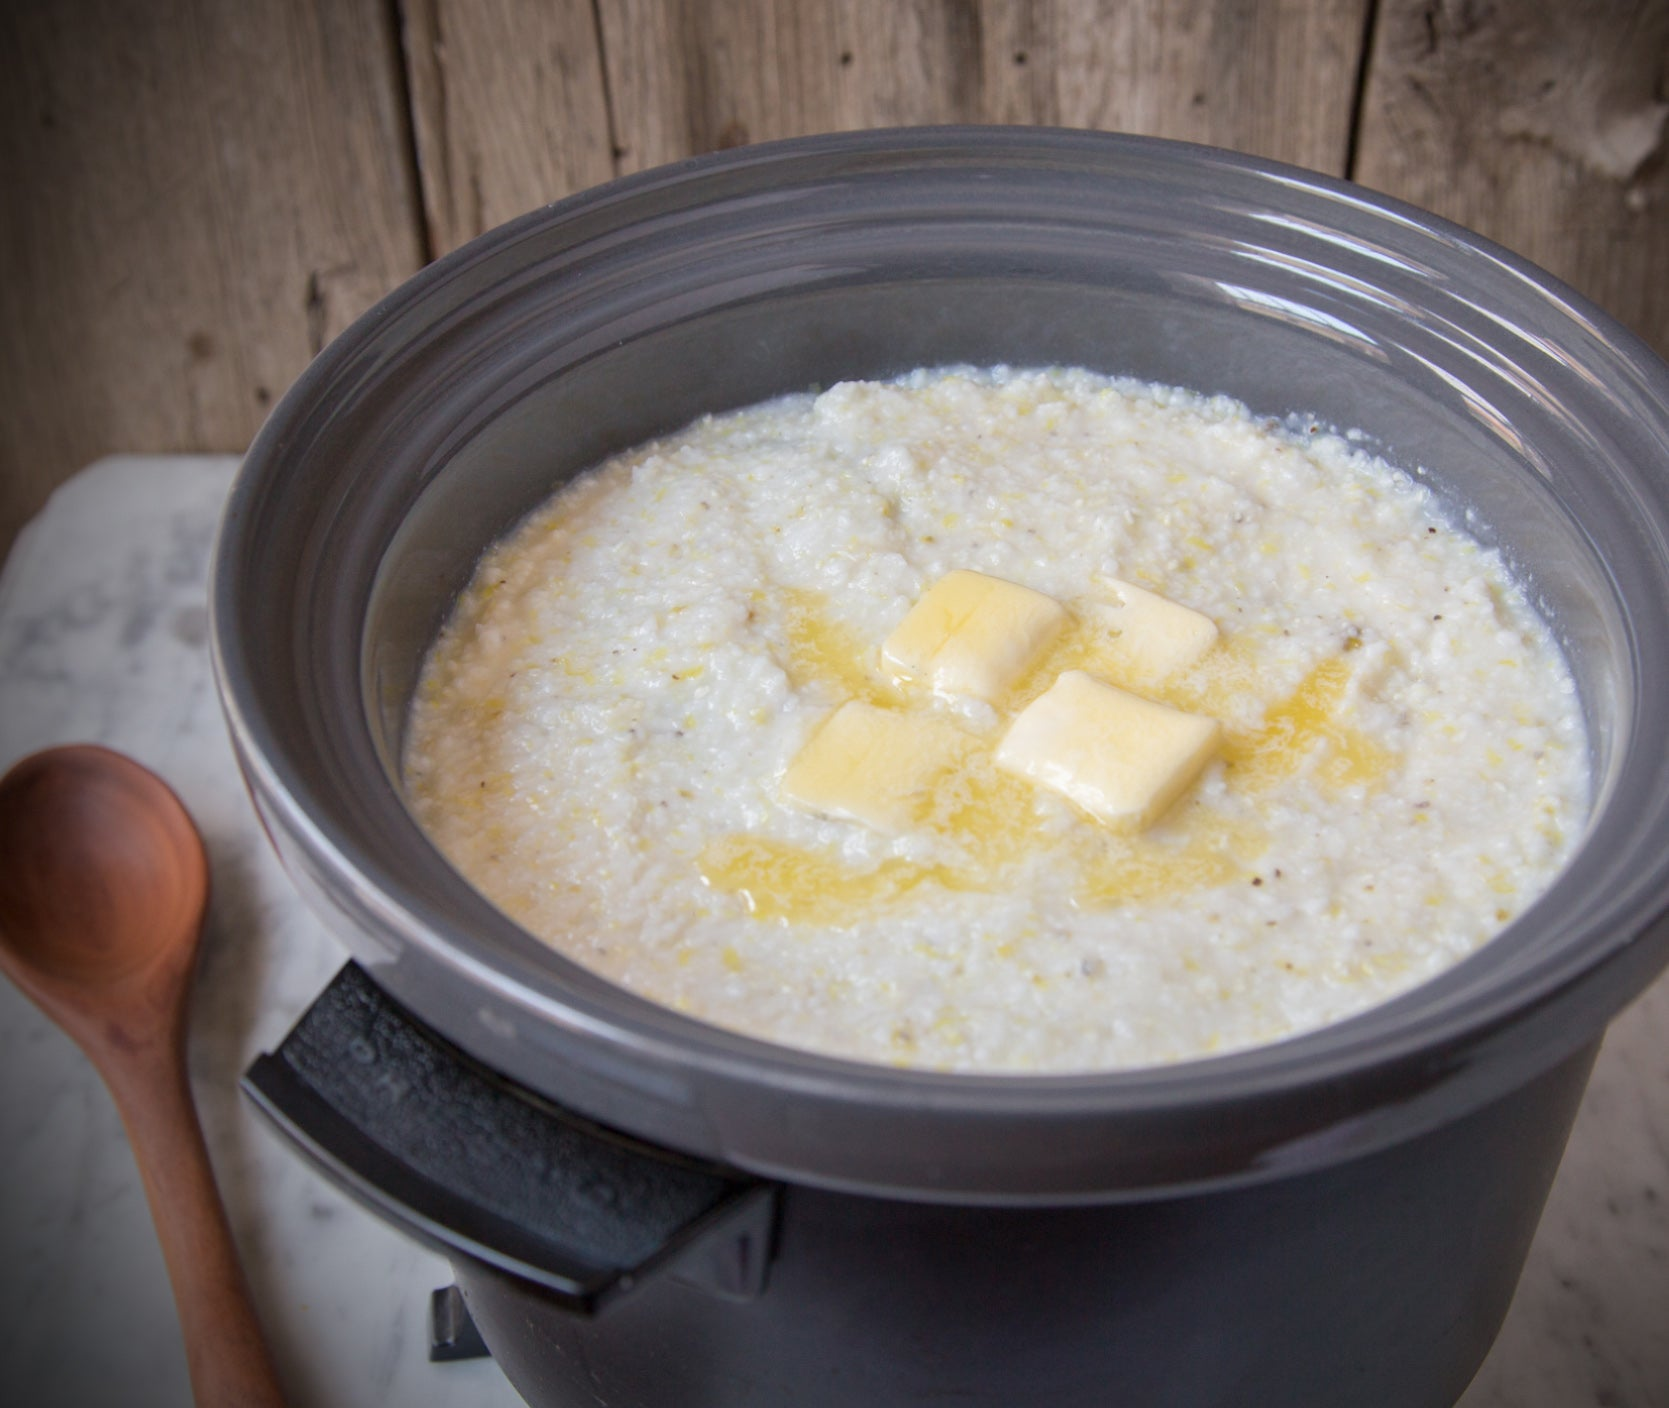 crock-pot-grits-in-slow-cooker